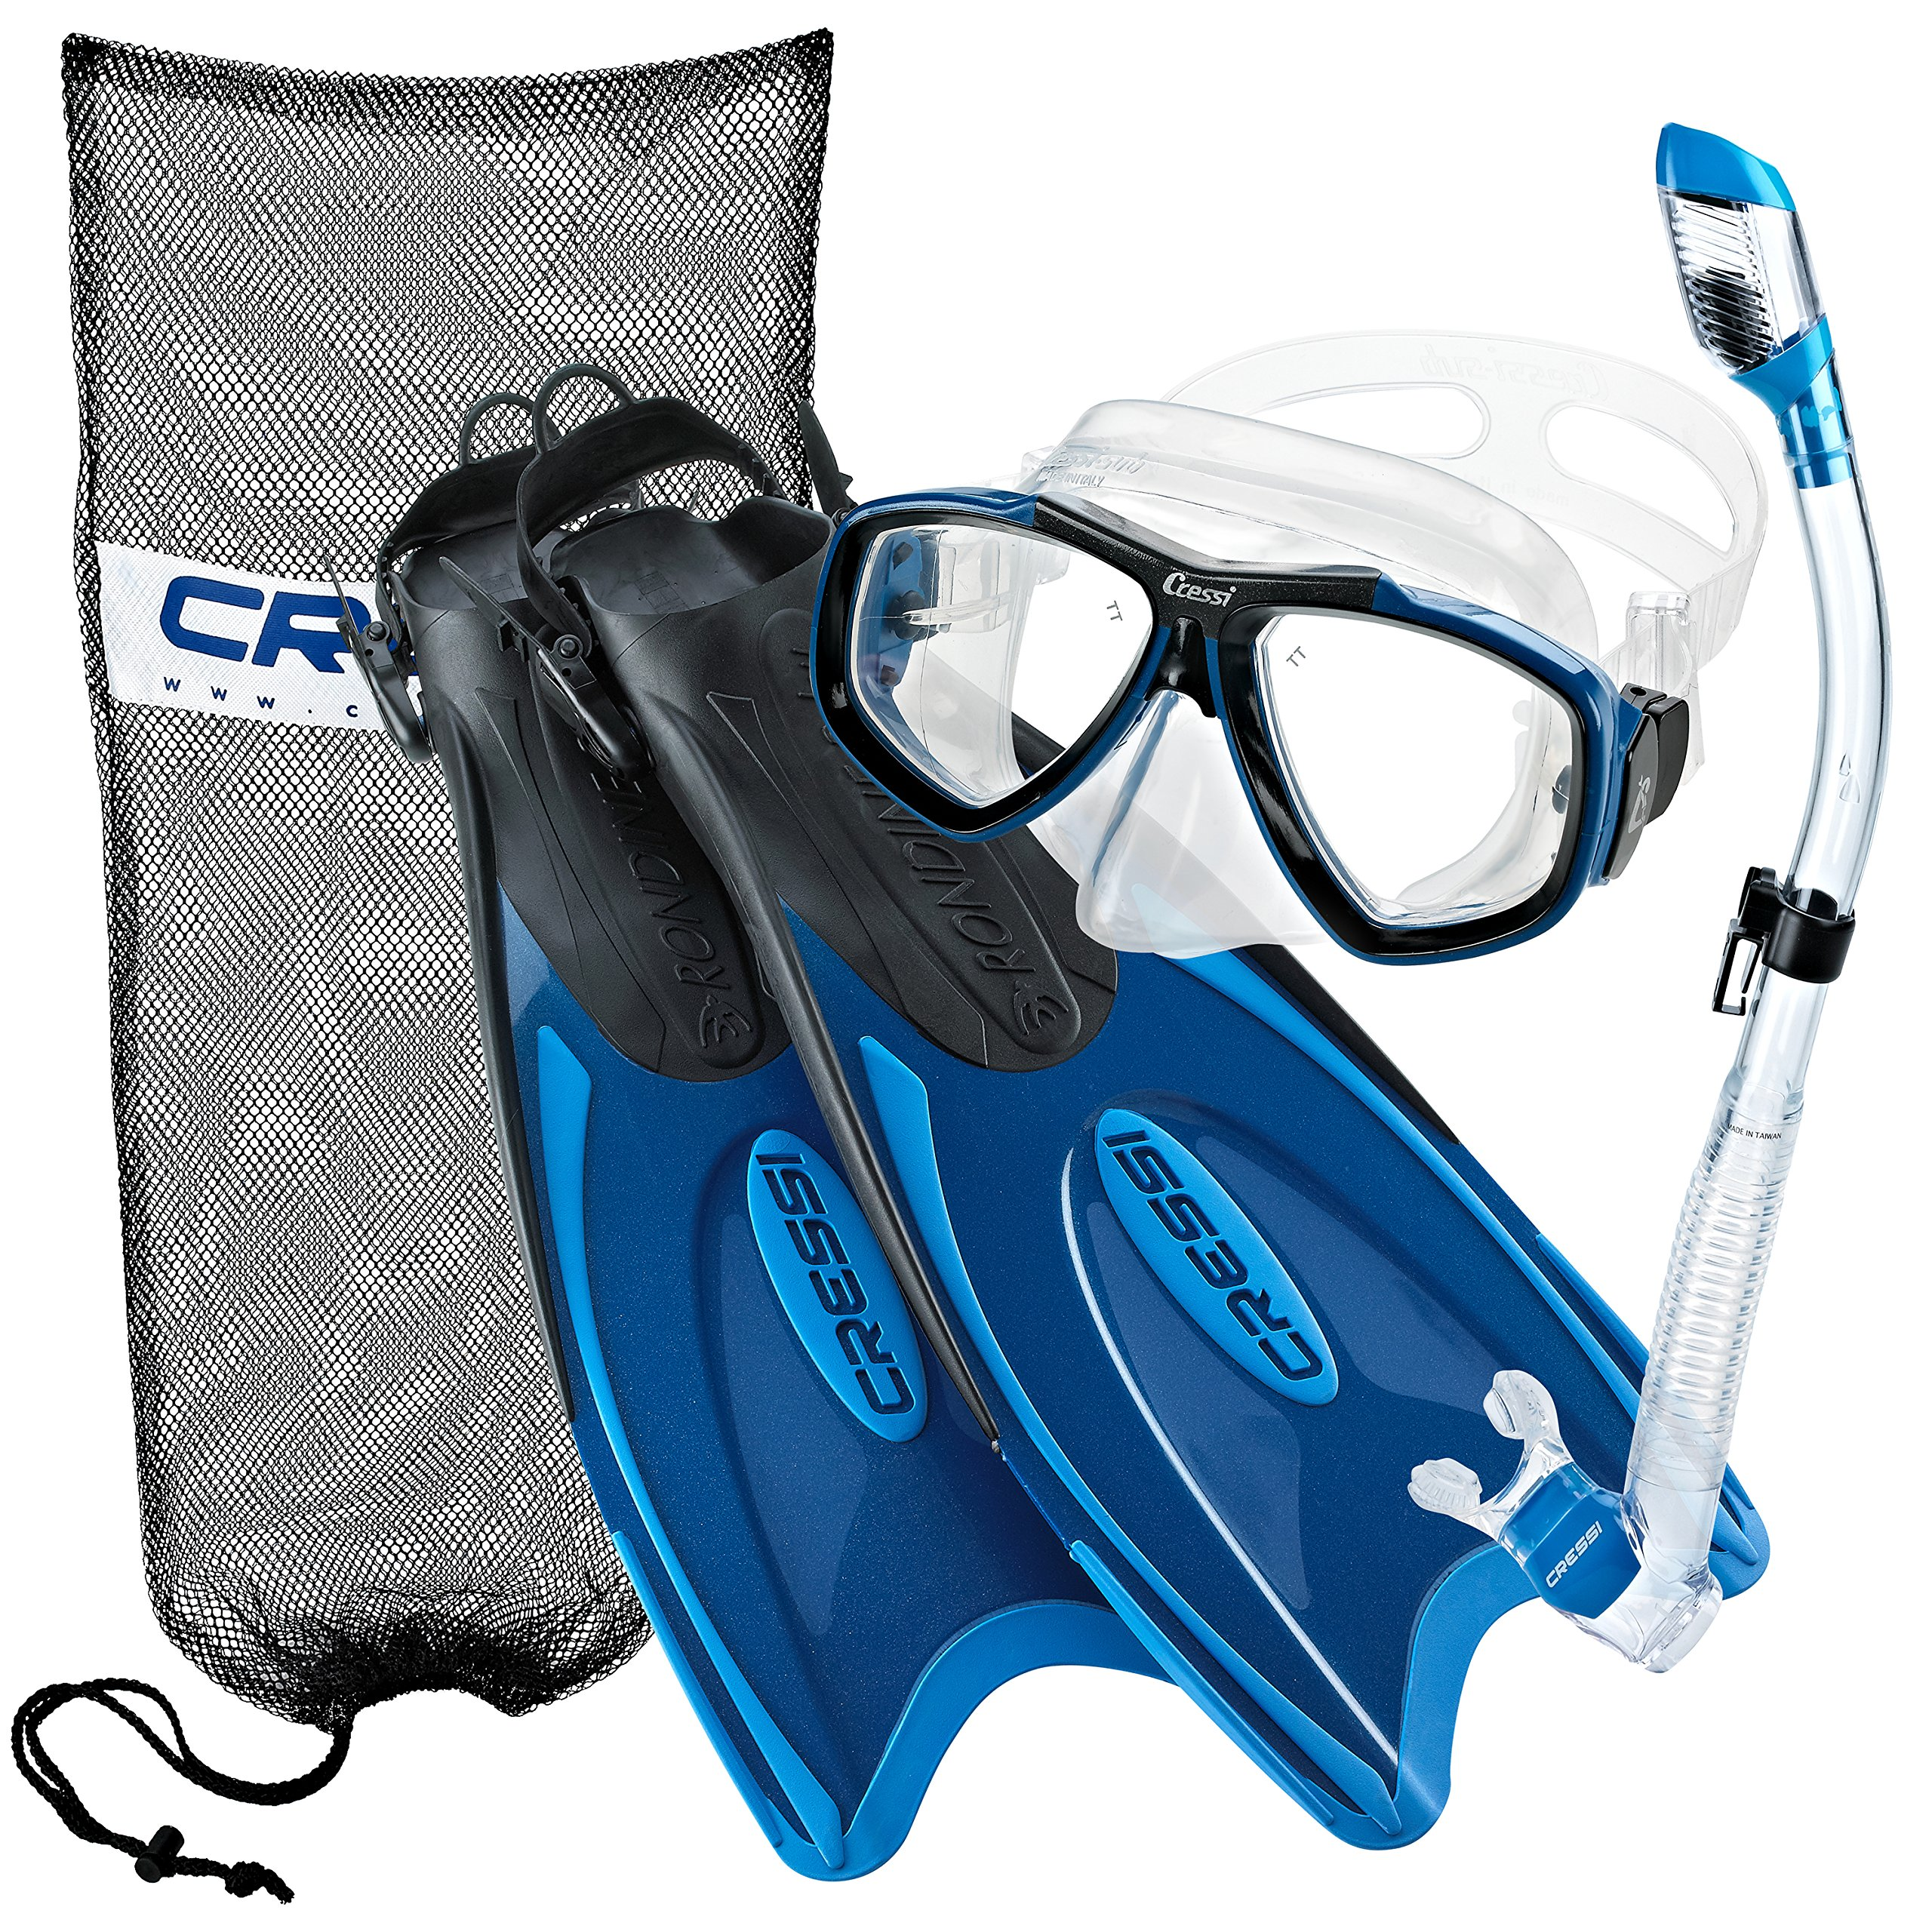 Cressi Palau Long Fins, Focus Mask, Dry Snorkel, Snorkeling Gear Package, Blue-Large/X-Large by Cressi